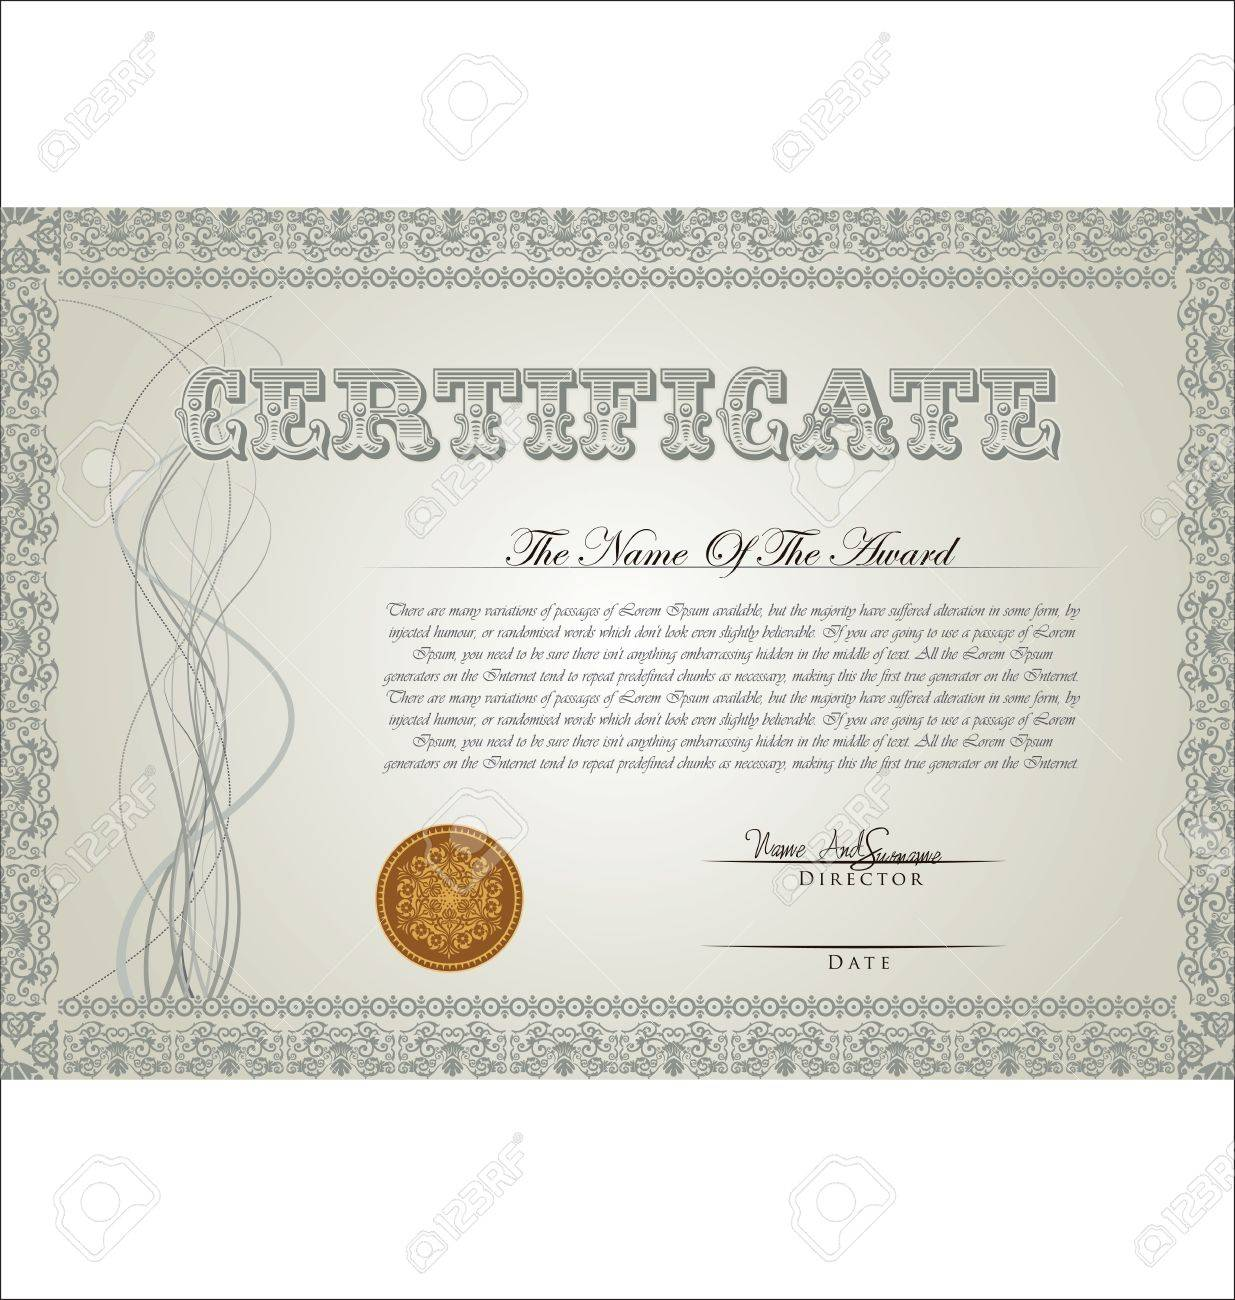 How To Sell Stock Certificates Without A Broker Trusted Safe